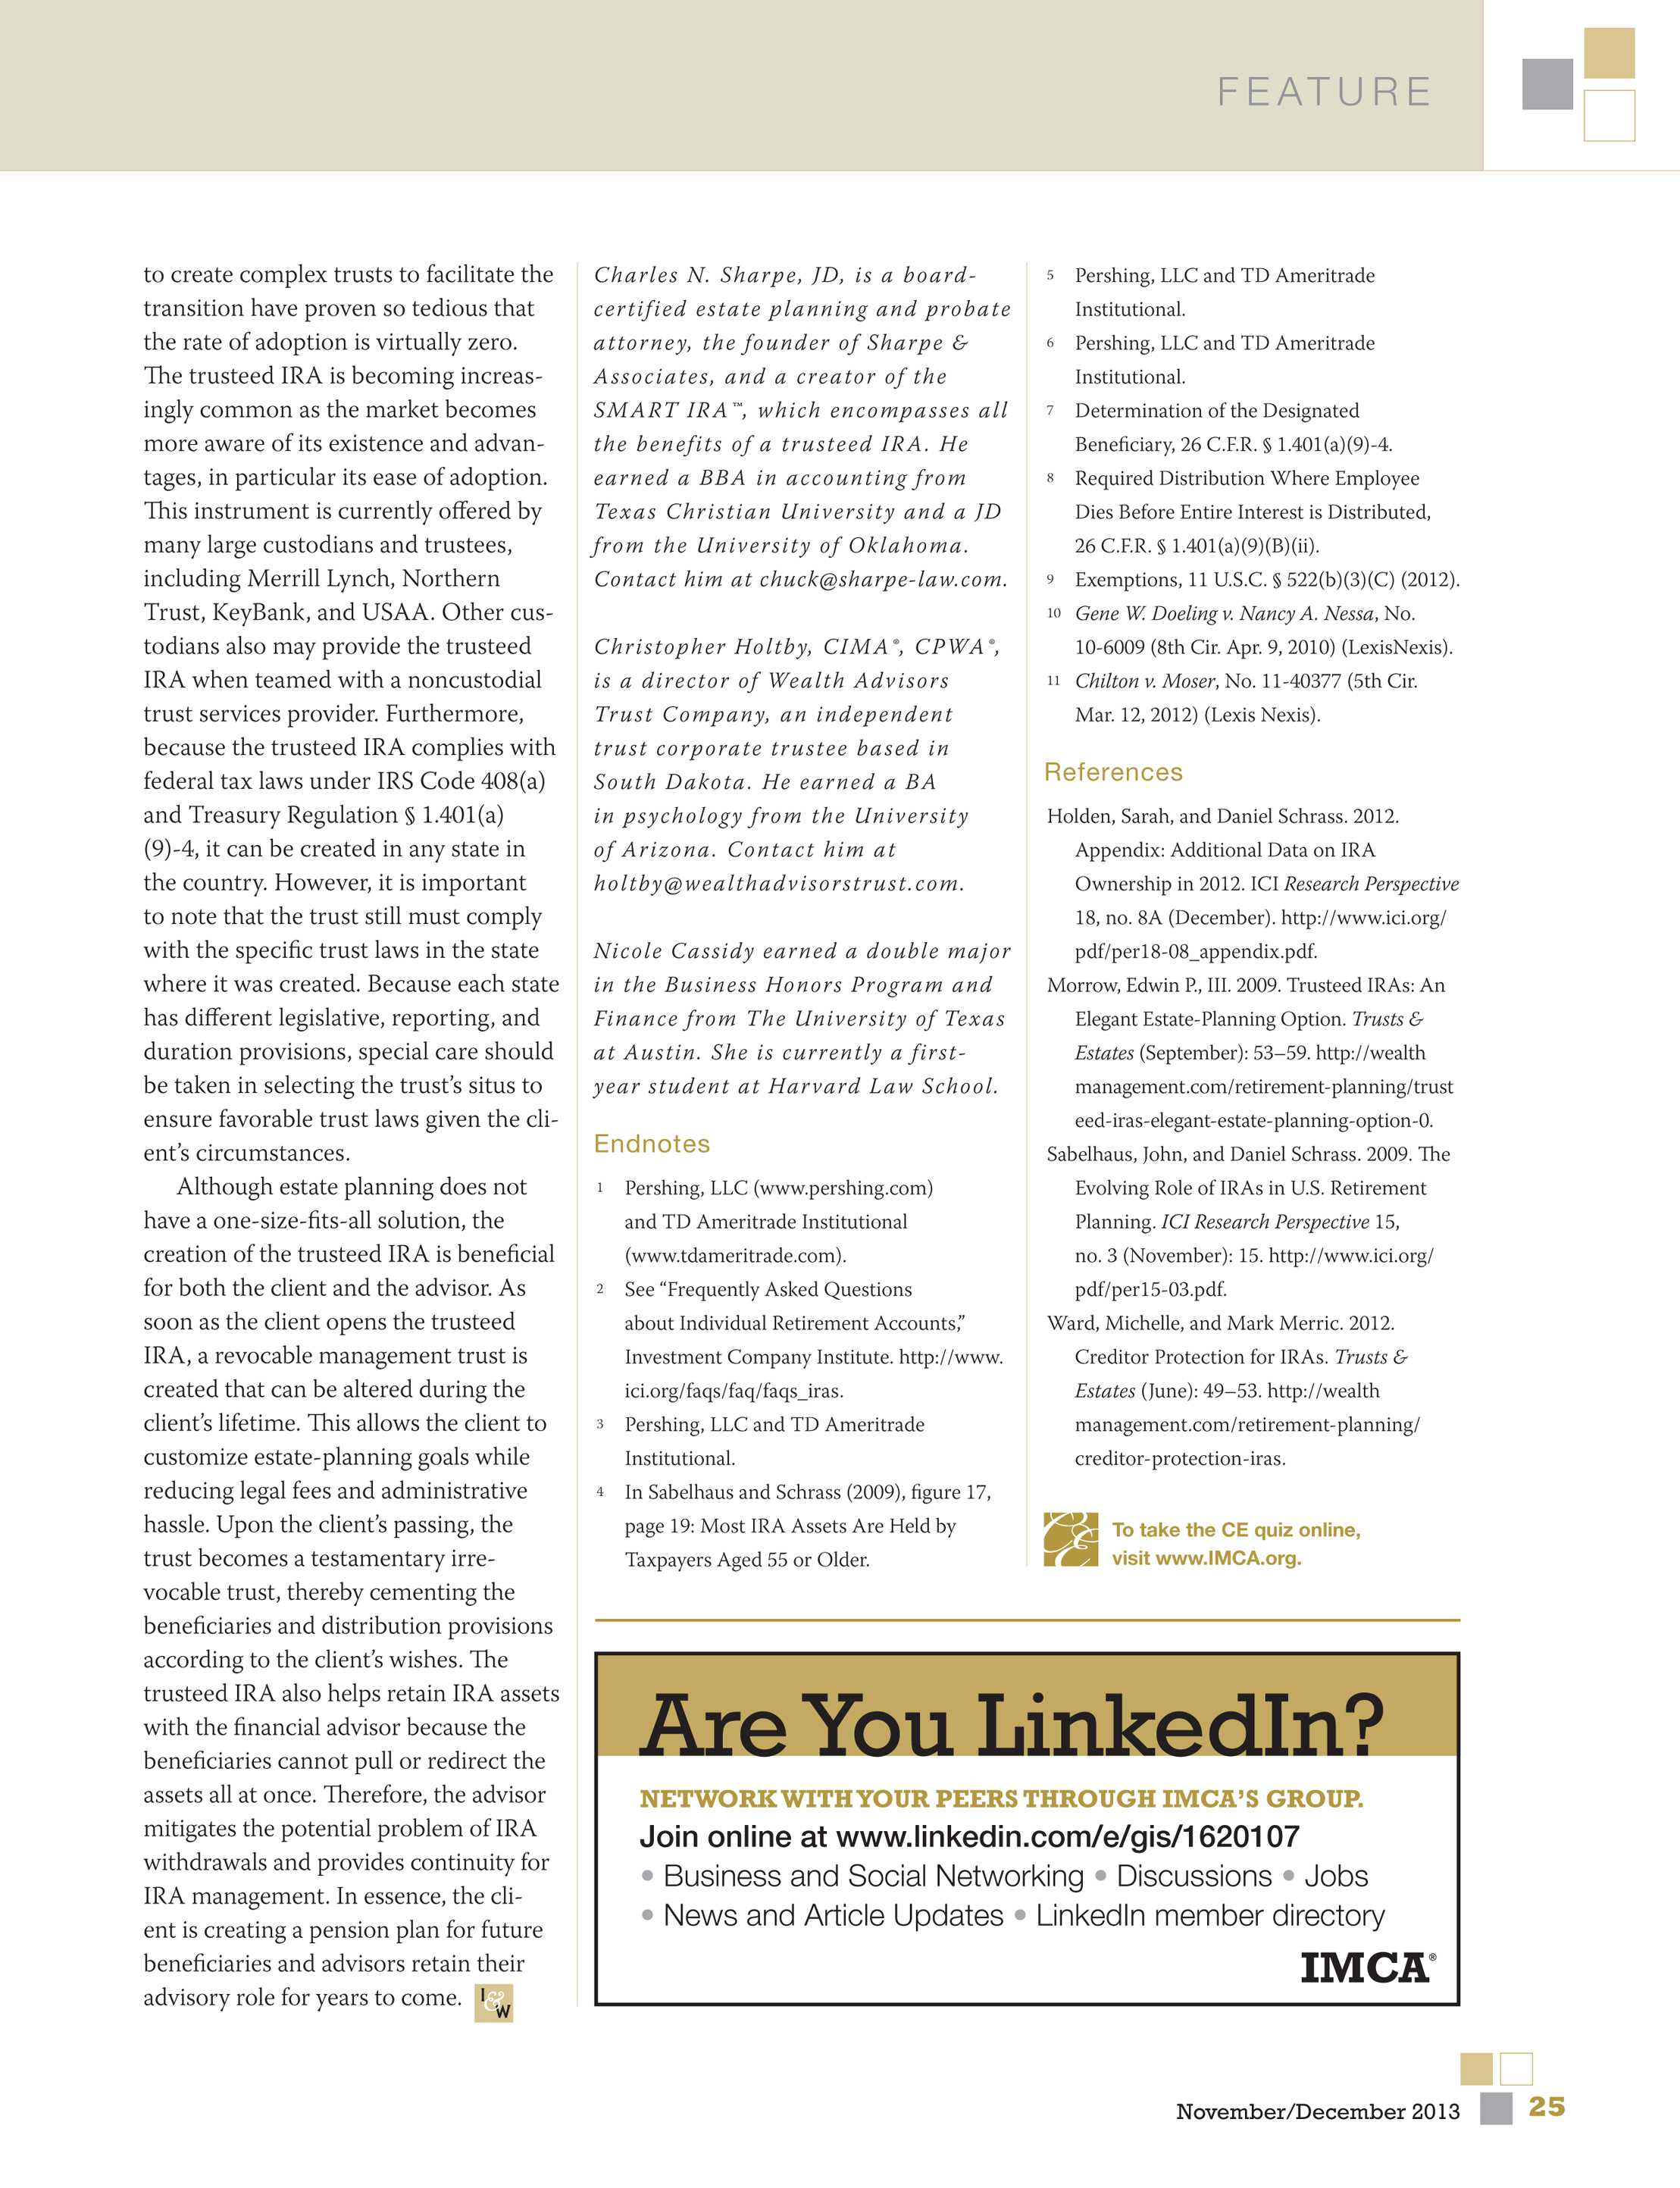 Investments & Wealth Monitor - November/December 2013 - page 26